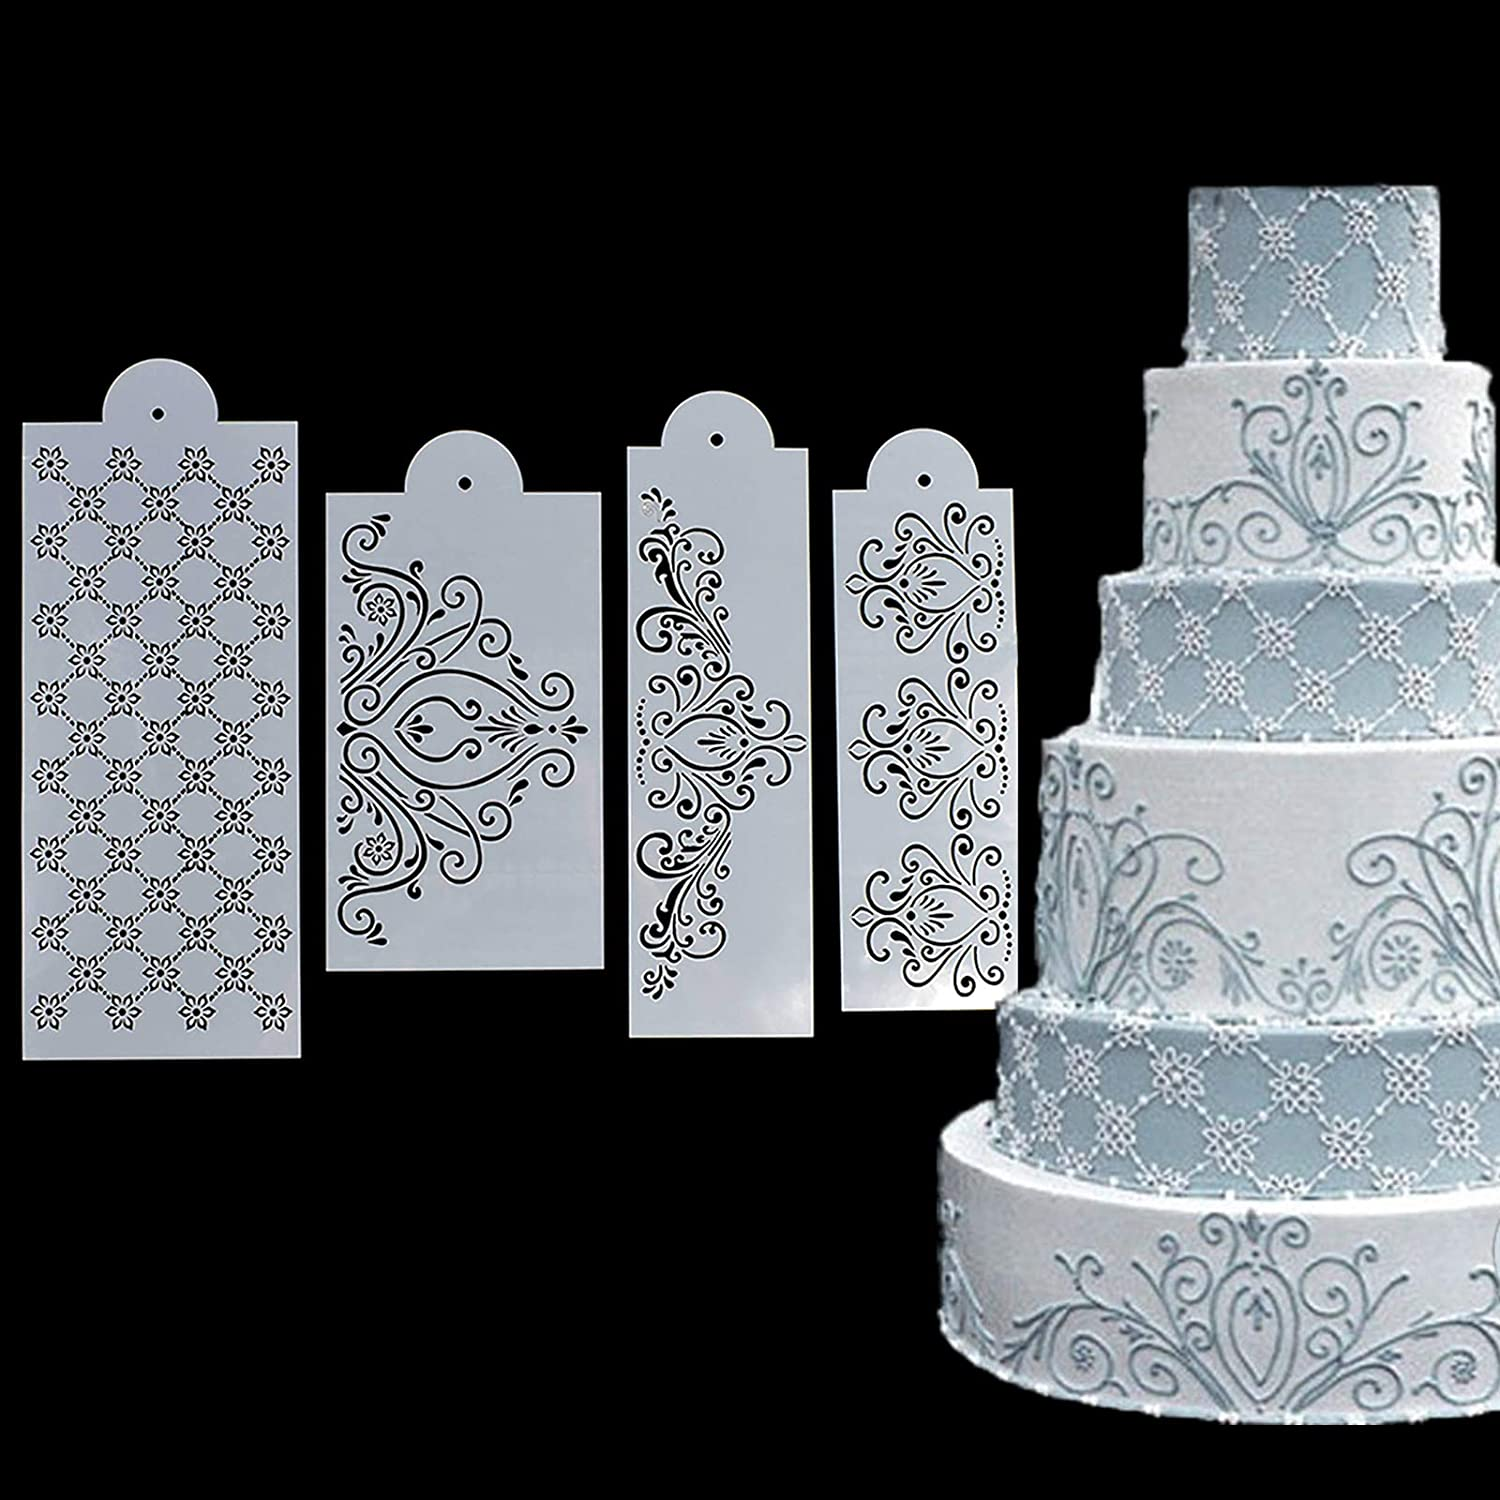 RONRONS 4 Pieces Cake Decorating Template Kit Food Grade Spray Flowers Stencil Plastic Powdered Sugar Sieve Mould Set Wedding Cake Decorative Lace Flower Edge Molding Baking Stencils Molds Tools